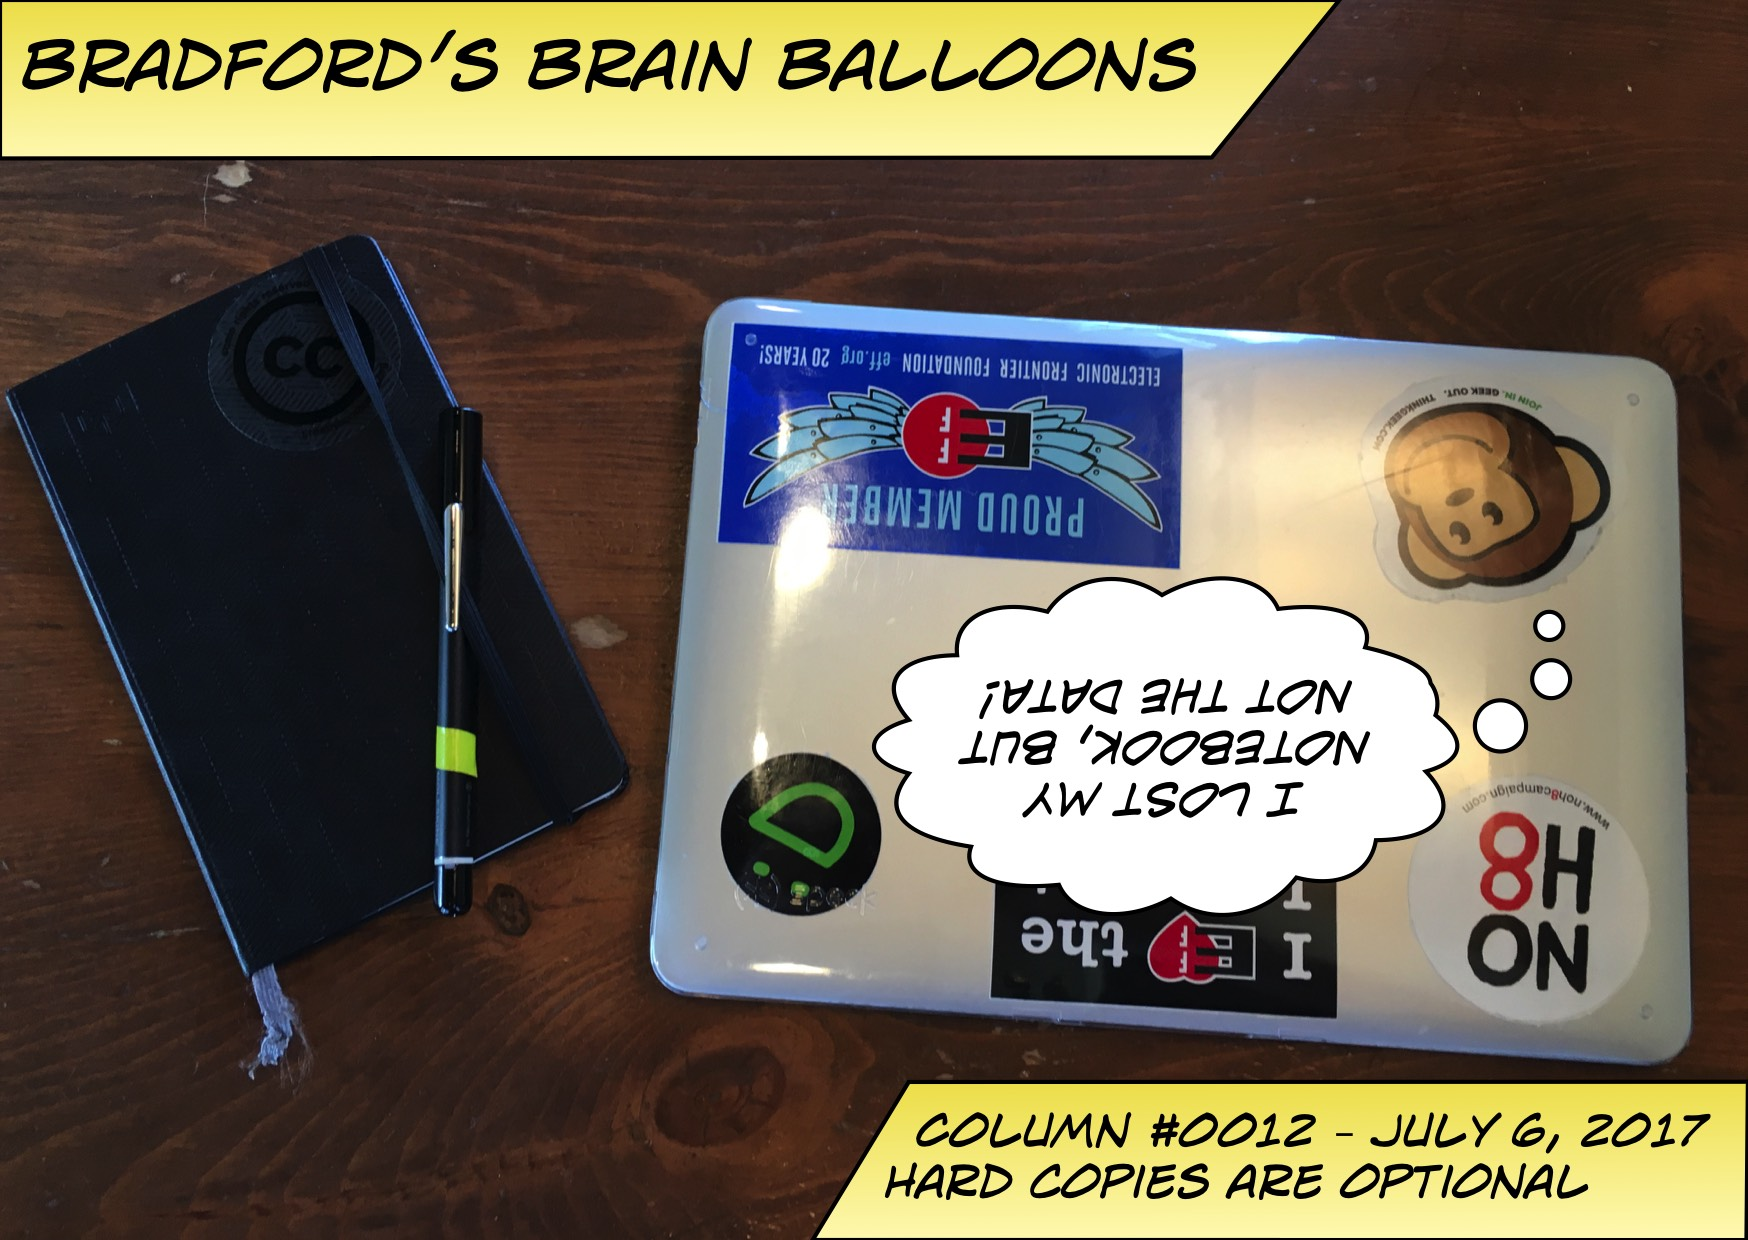 Title panel for Bradford's Brain Balloon #12. Hard Copies are optional. Sub heading, I lost my notebook but not my data.